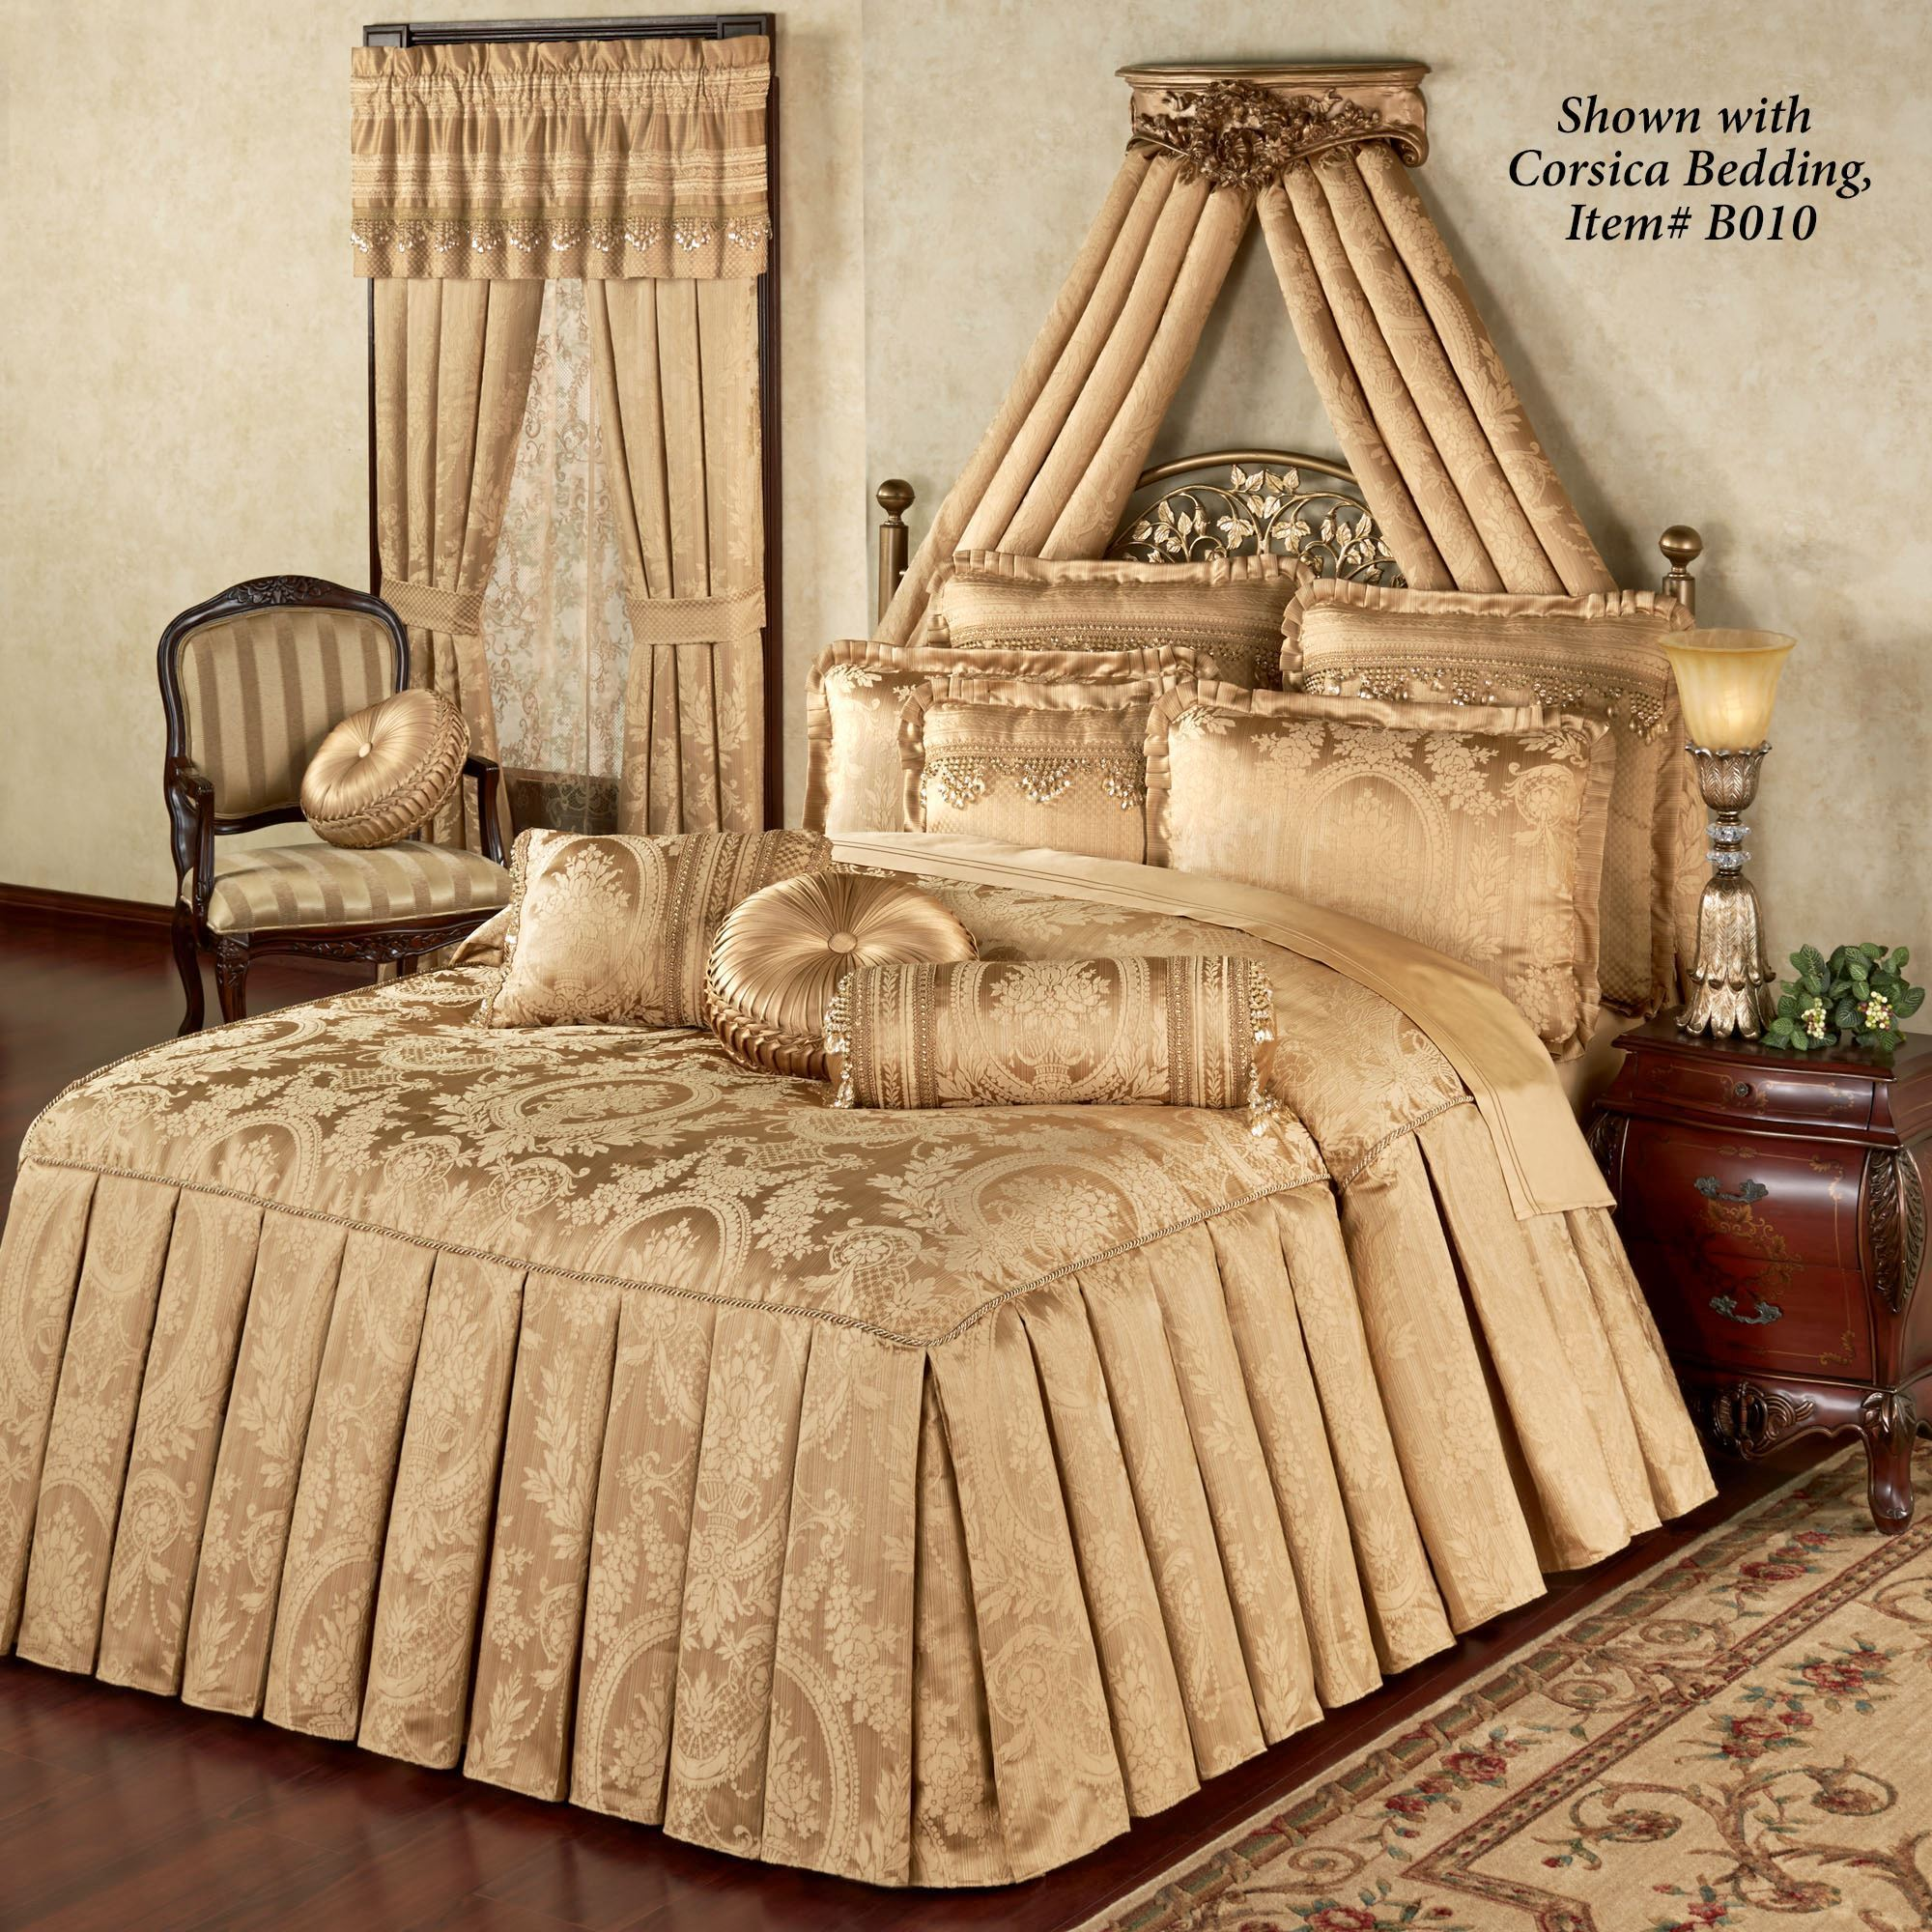 couture mezzo canopy bed drapes above